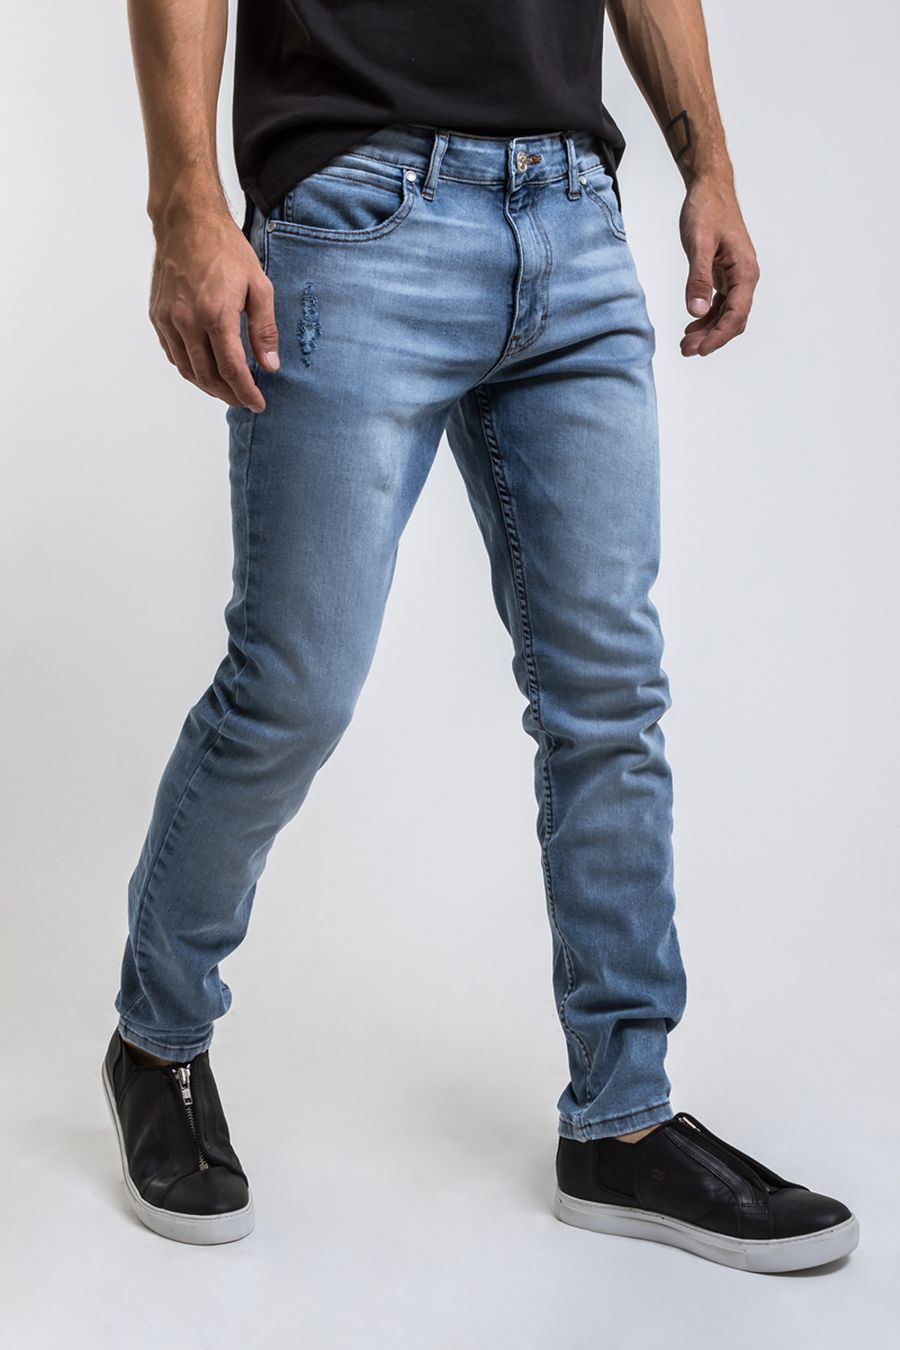 JEAN-H-DENIM-BLUE-TAG-BONNO